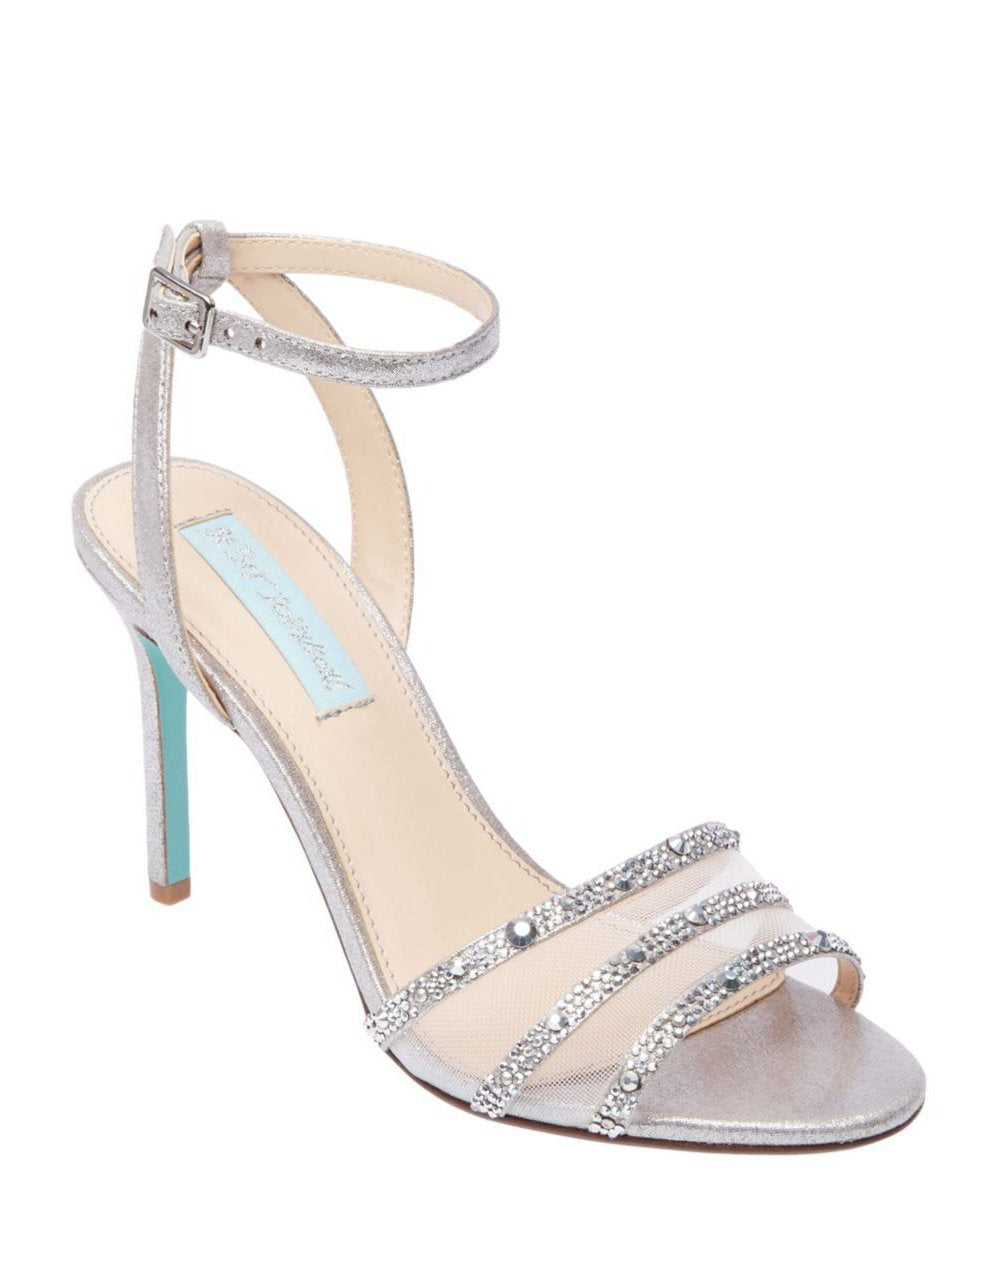 SB-VEDA SILVER - SHOES - Betsey Johnson